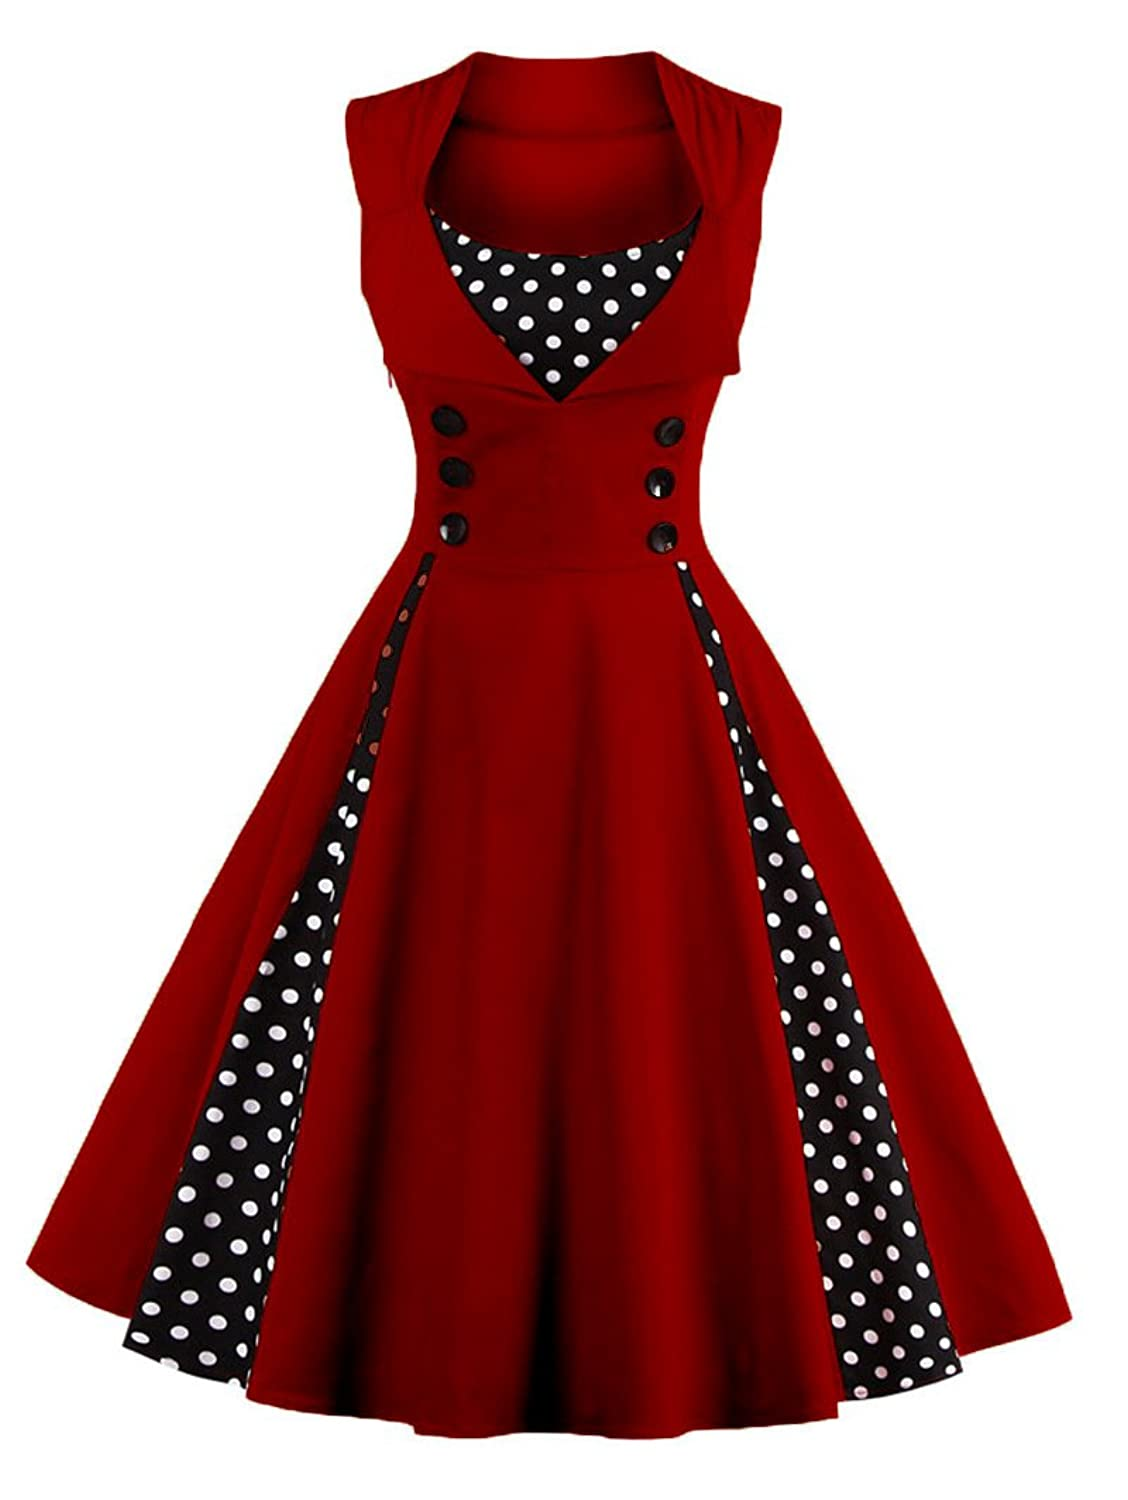 1950s Dresses, 50s Dresses | 1950s Style Dresses LUNAJANY Womens Rockabilly Vintage Polka Dot Pin up Swing Cocktail Party Dress $24.59 AT vintagedancer.com